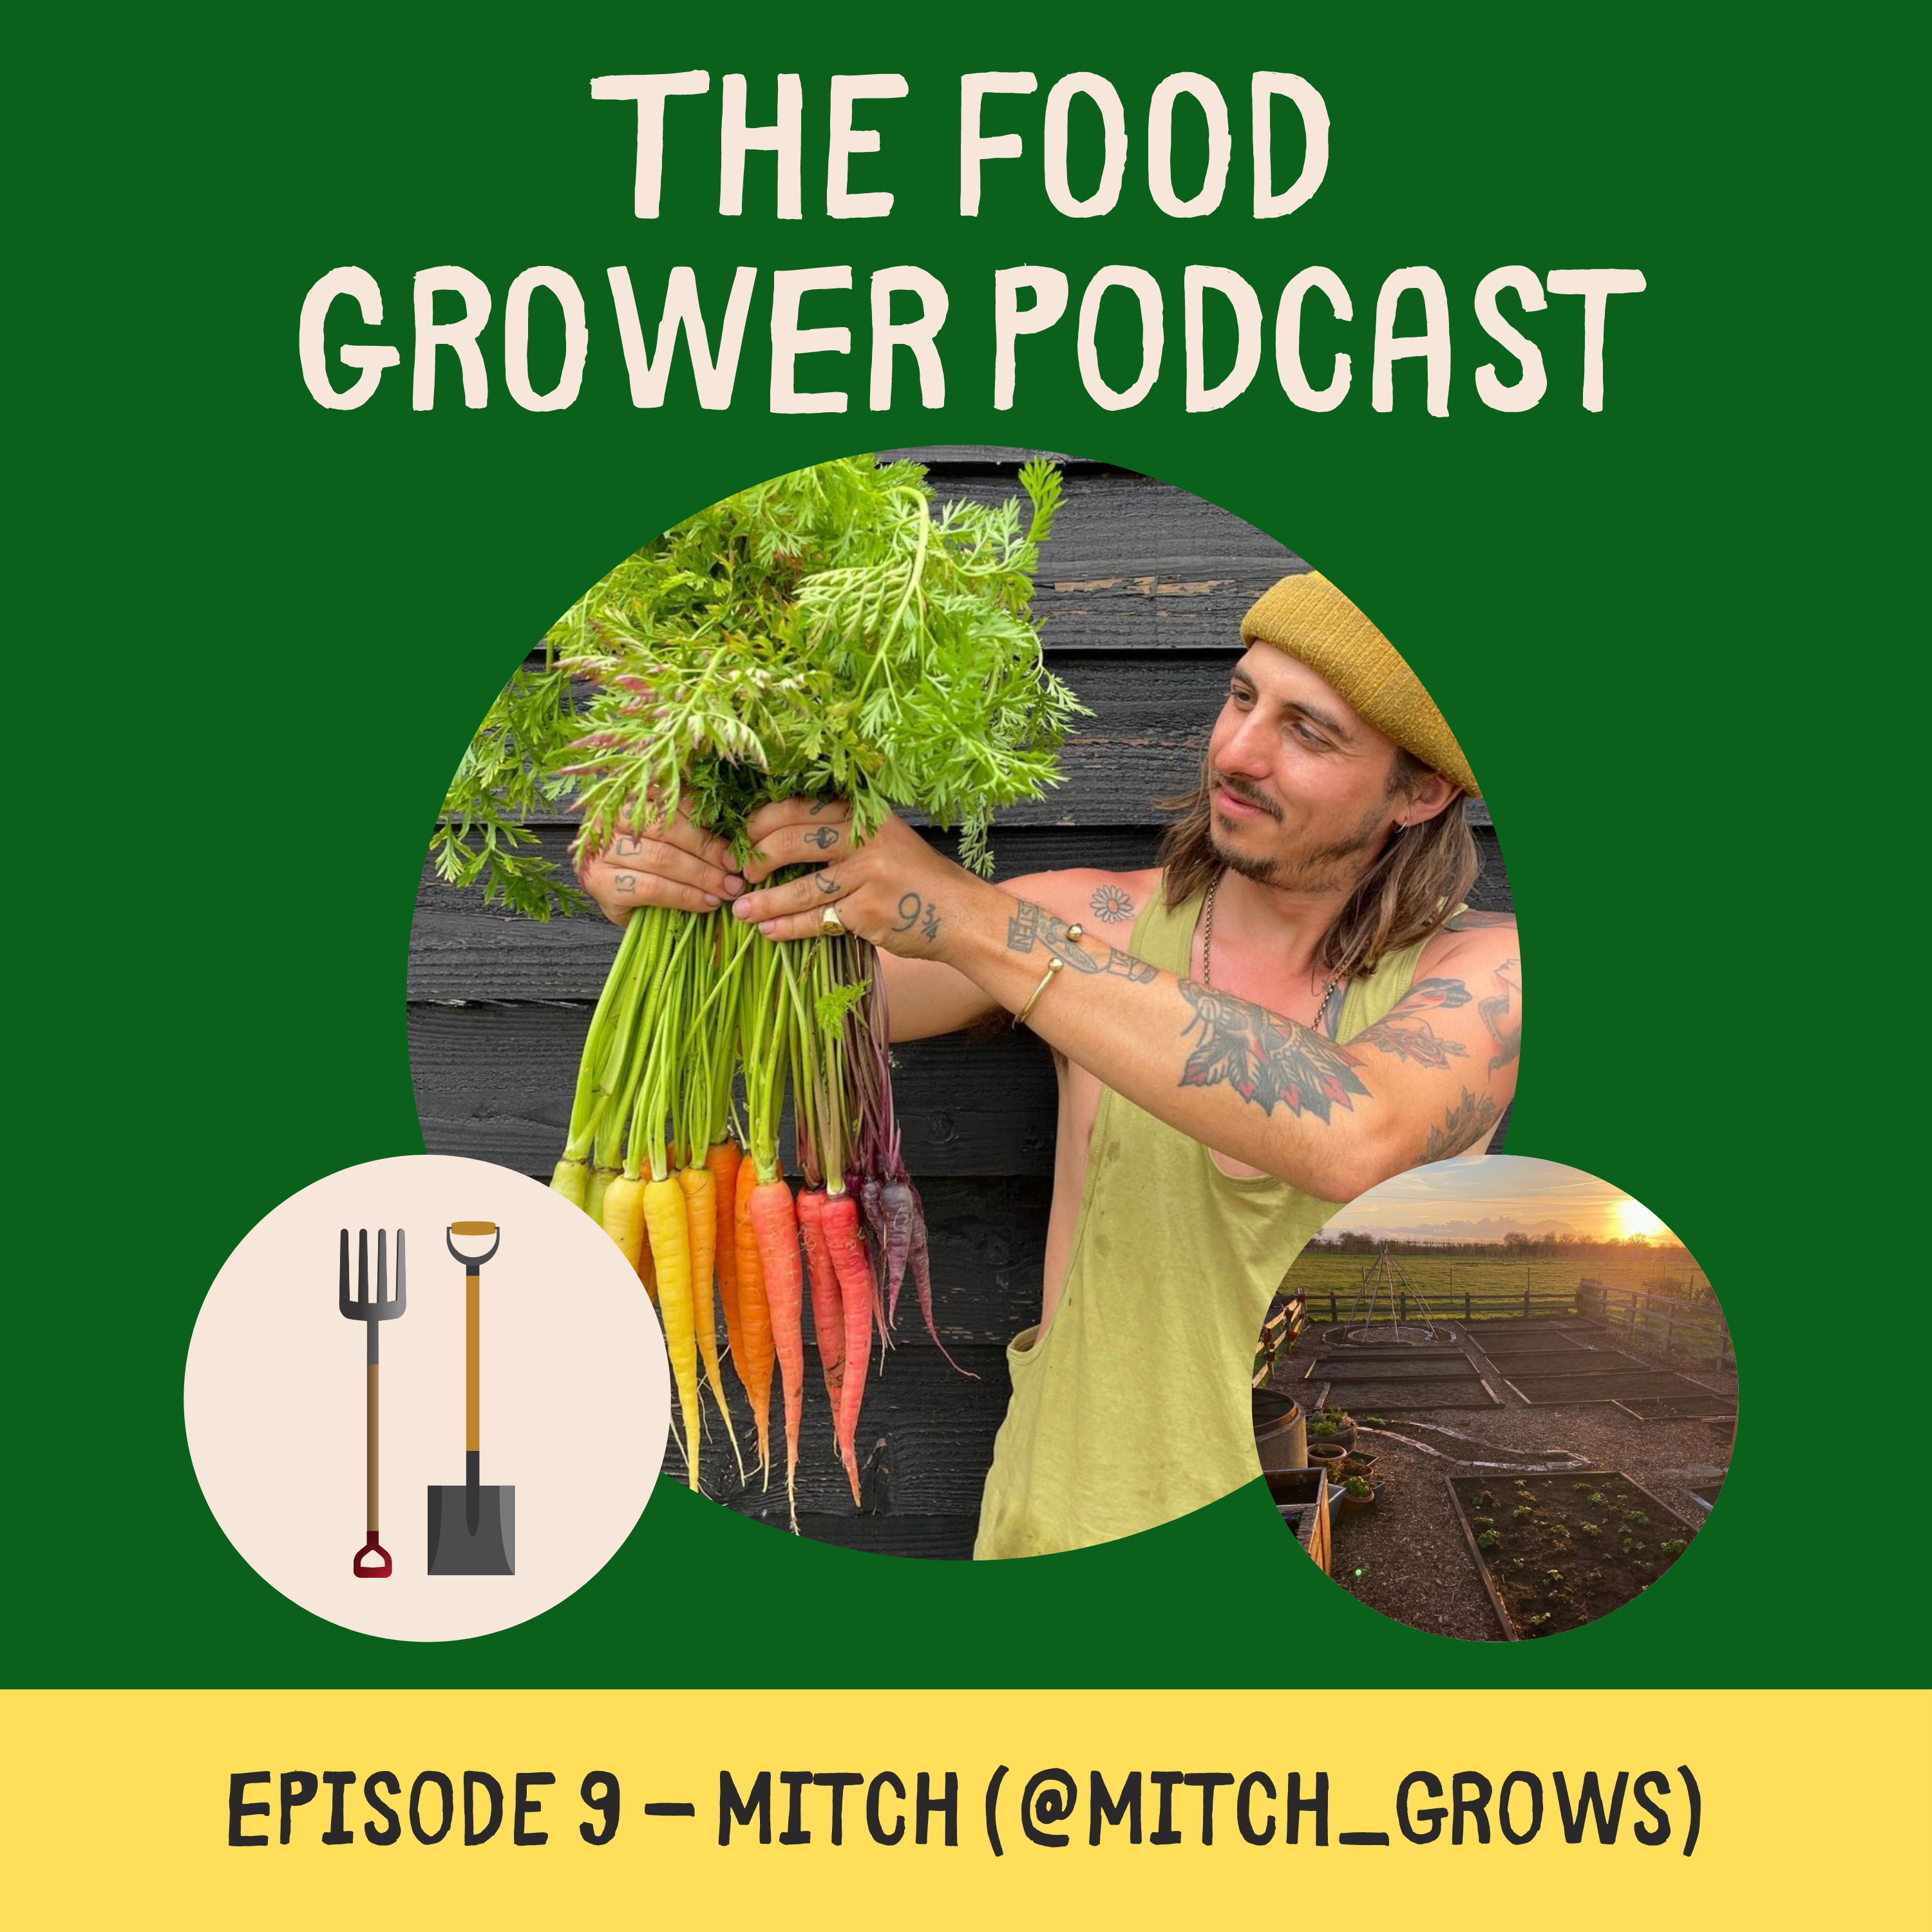 Food Grower Podcast Mitch Grows